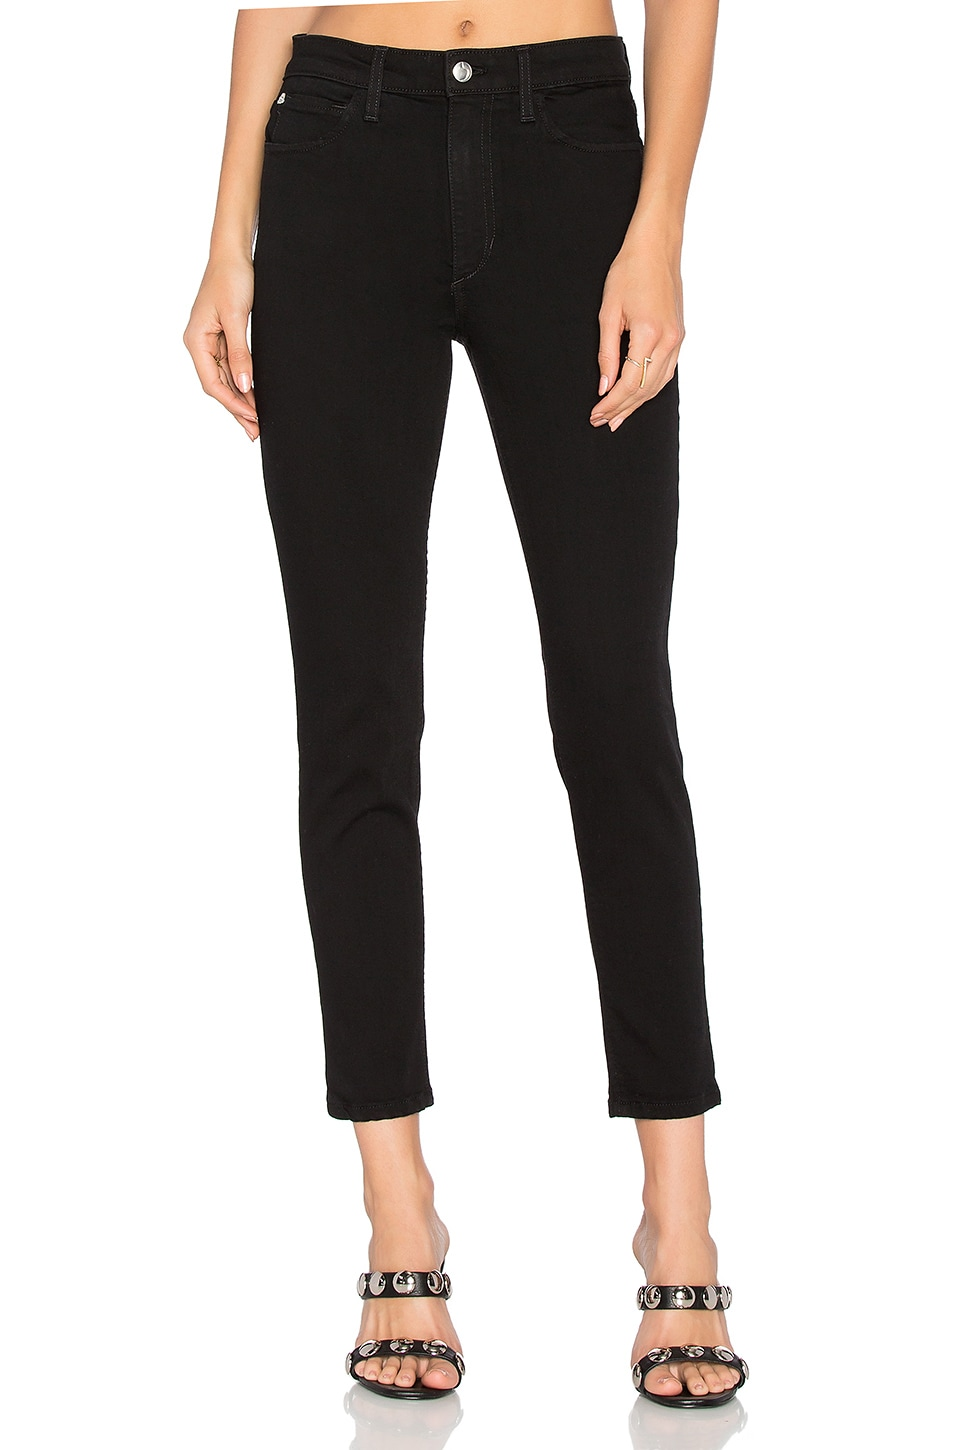 The Charlie High Rise Crop Skinny by Joe's Jeans